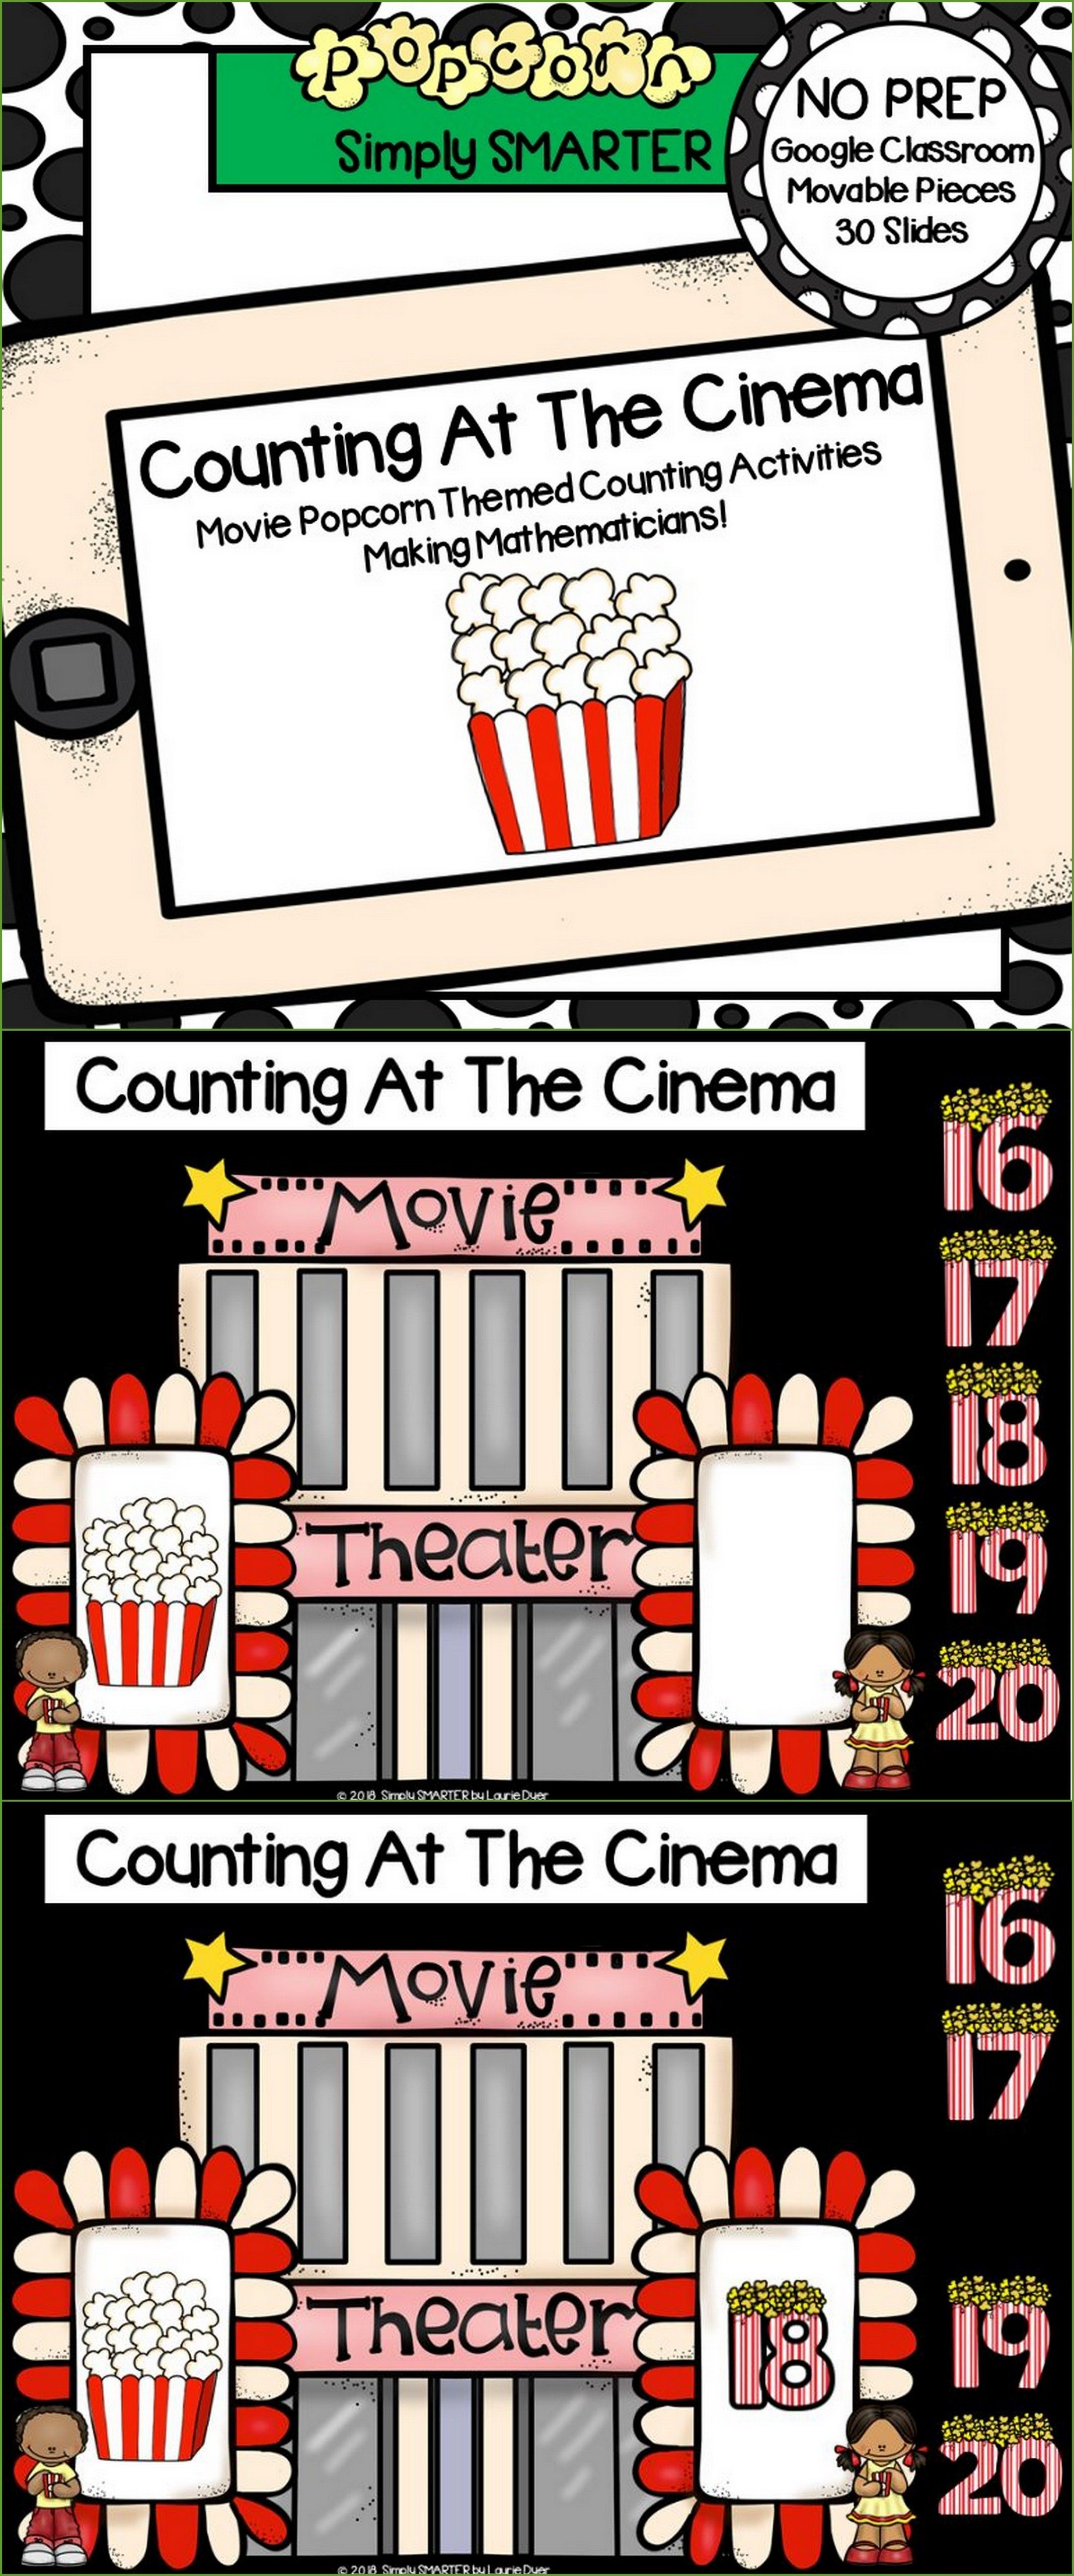 Movie Popcorn Themed Counting 1 30 Activities For